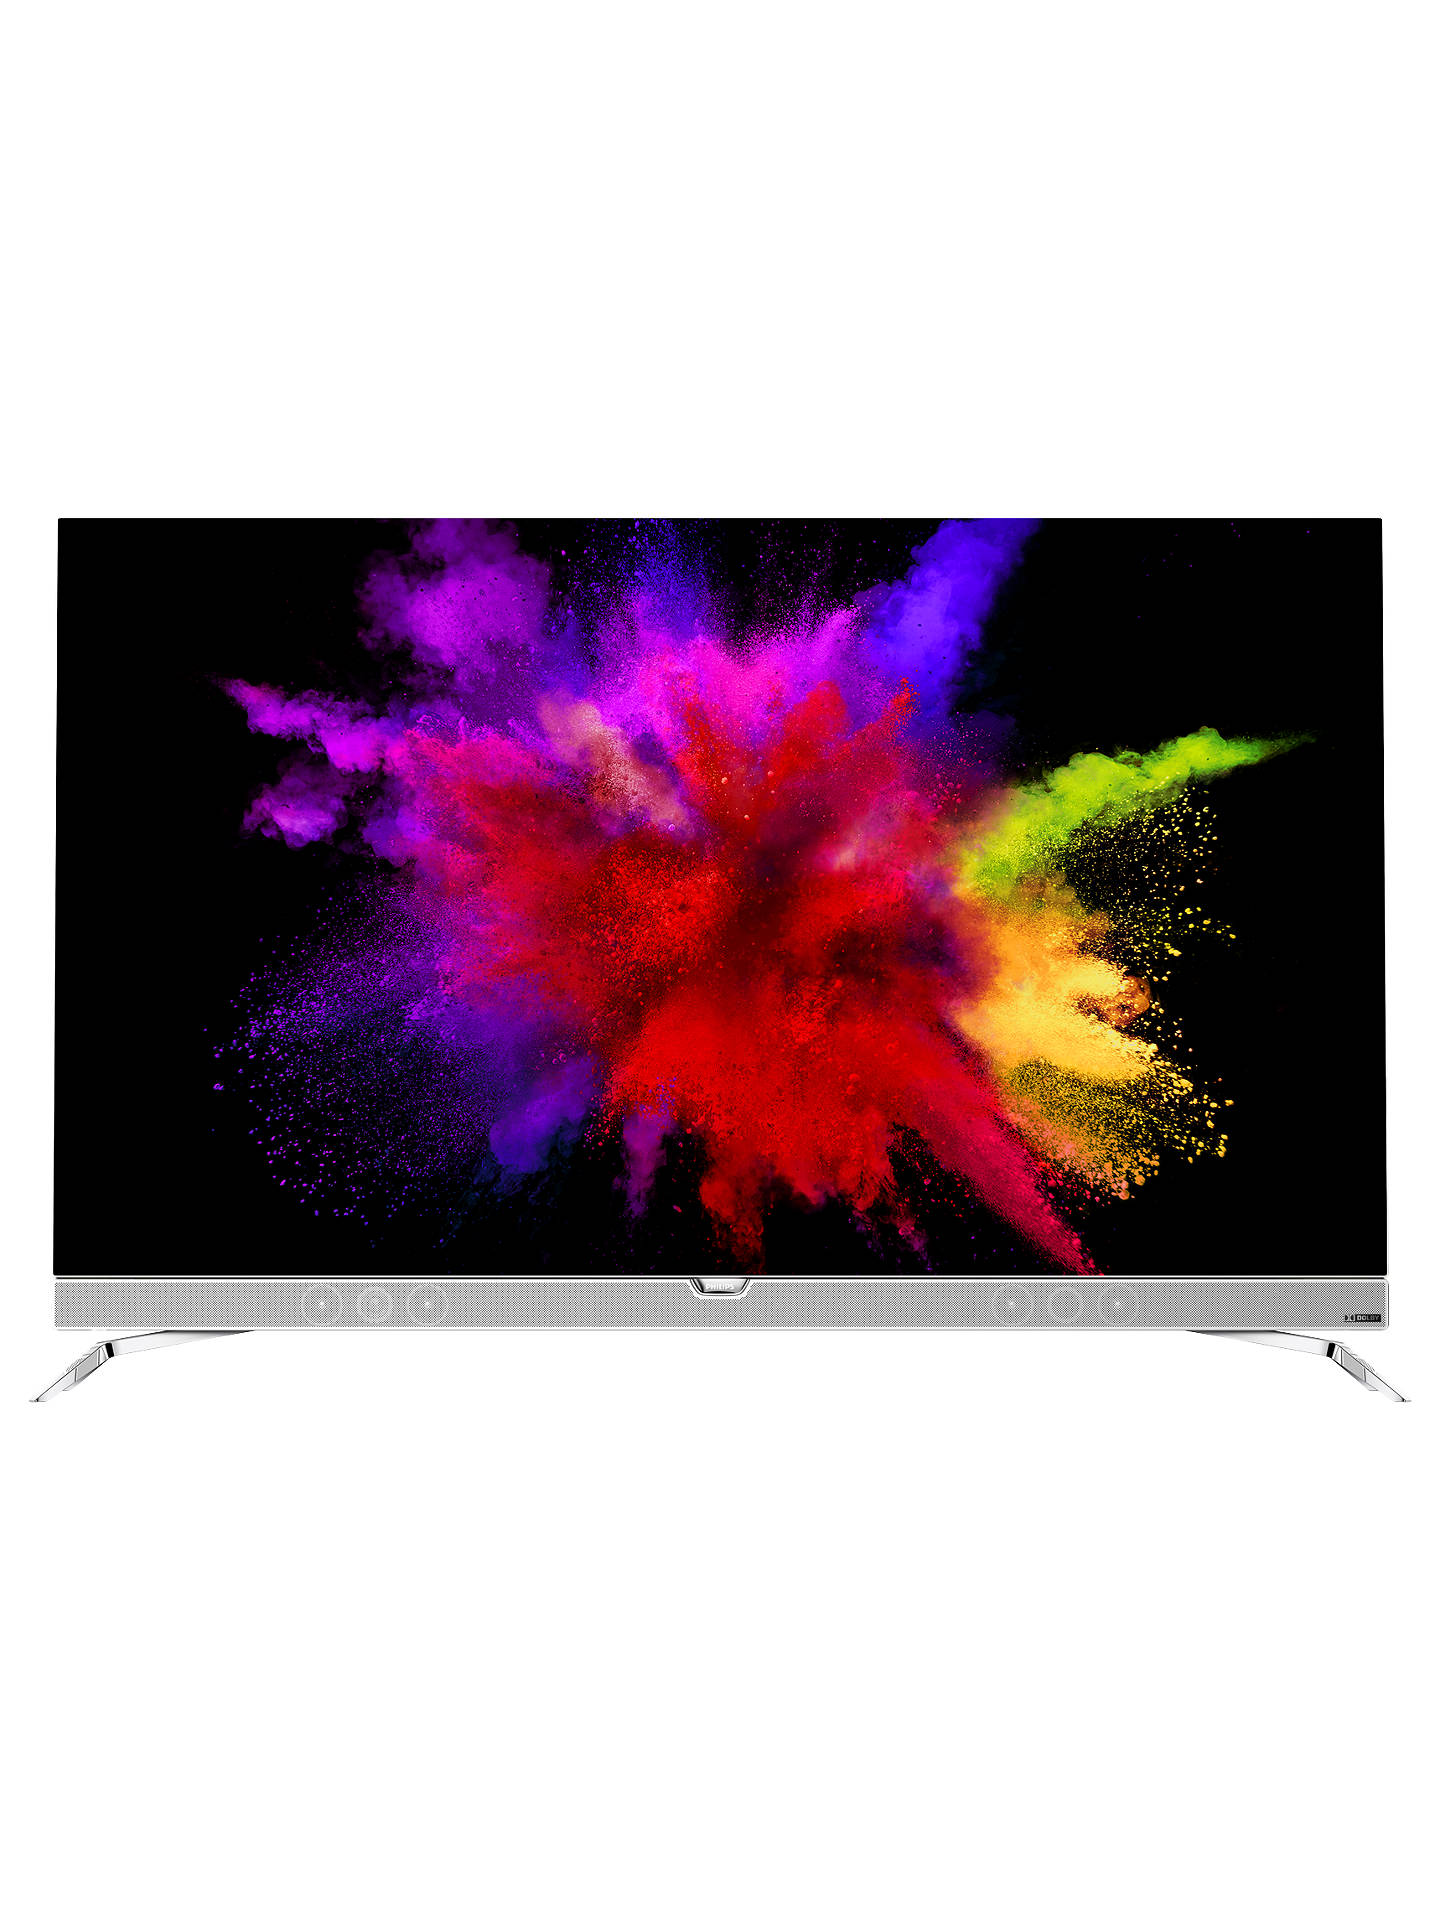 Philips 55POS901 OLED HDR 4K Ultra HD Smart Android TV, 55